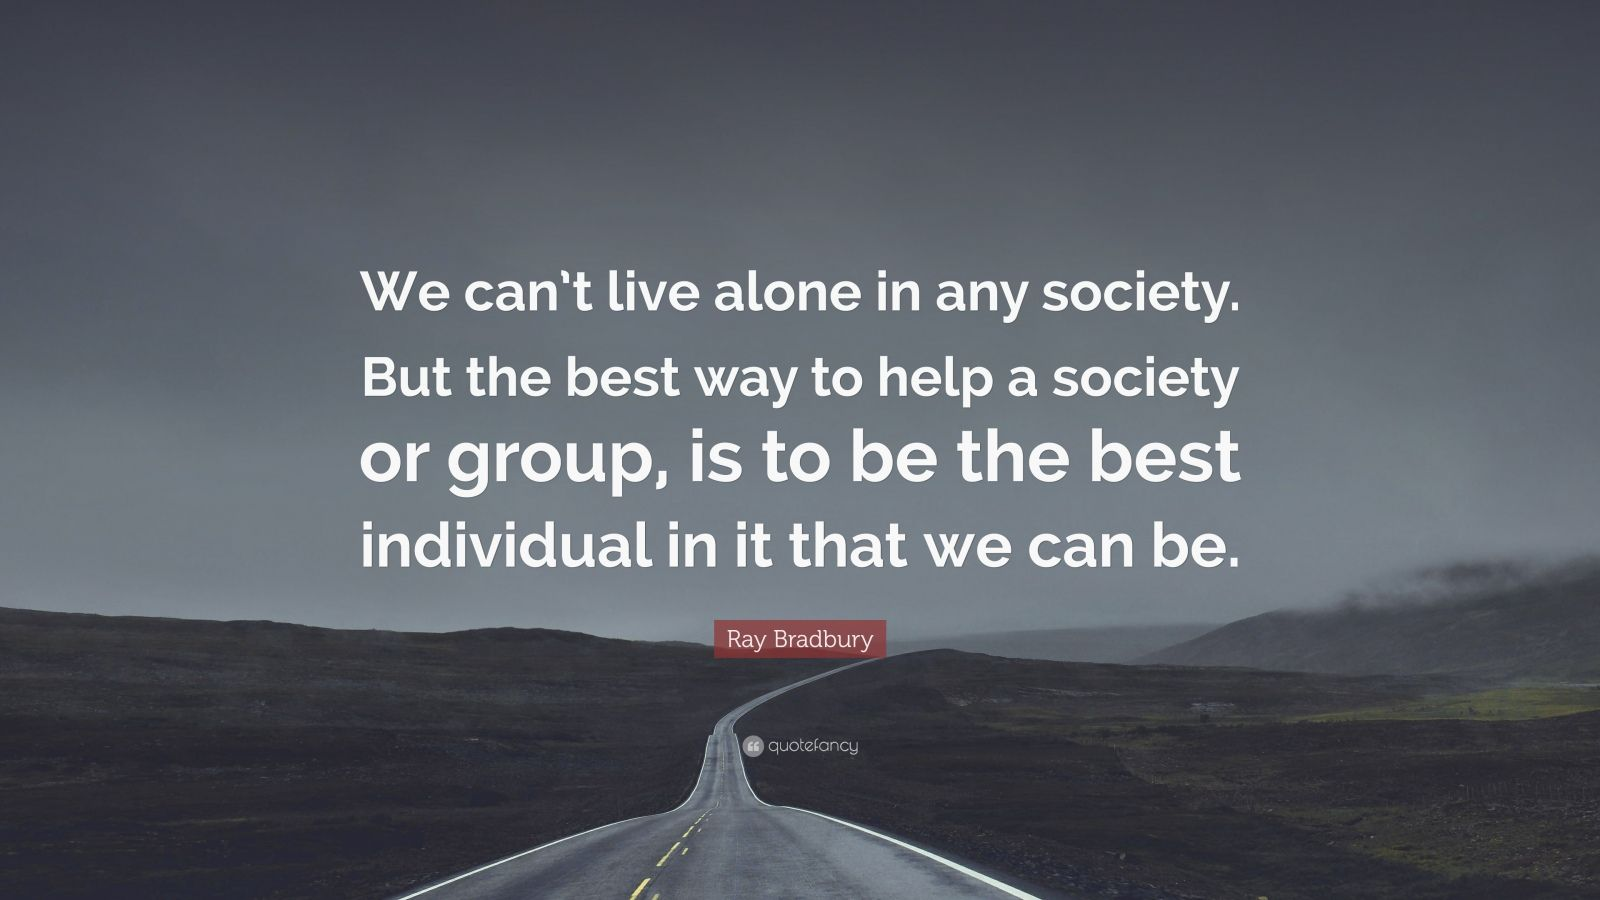 """Ray Bradbury Quote: """"We can't live alone in any society. But the best way to help a society or group, is to be the best individual in it that we can be."""""""